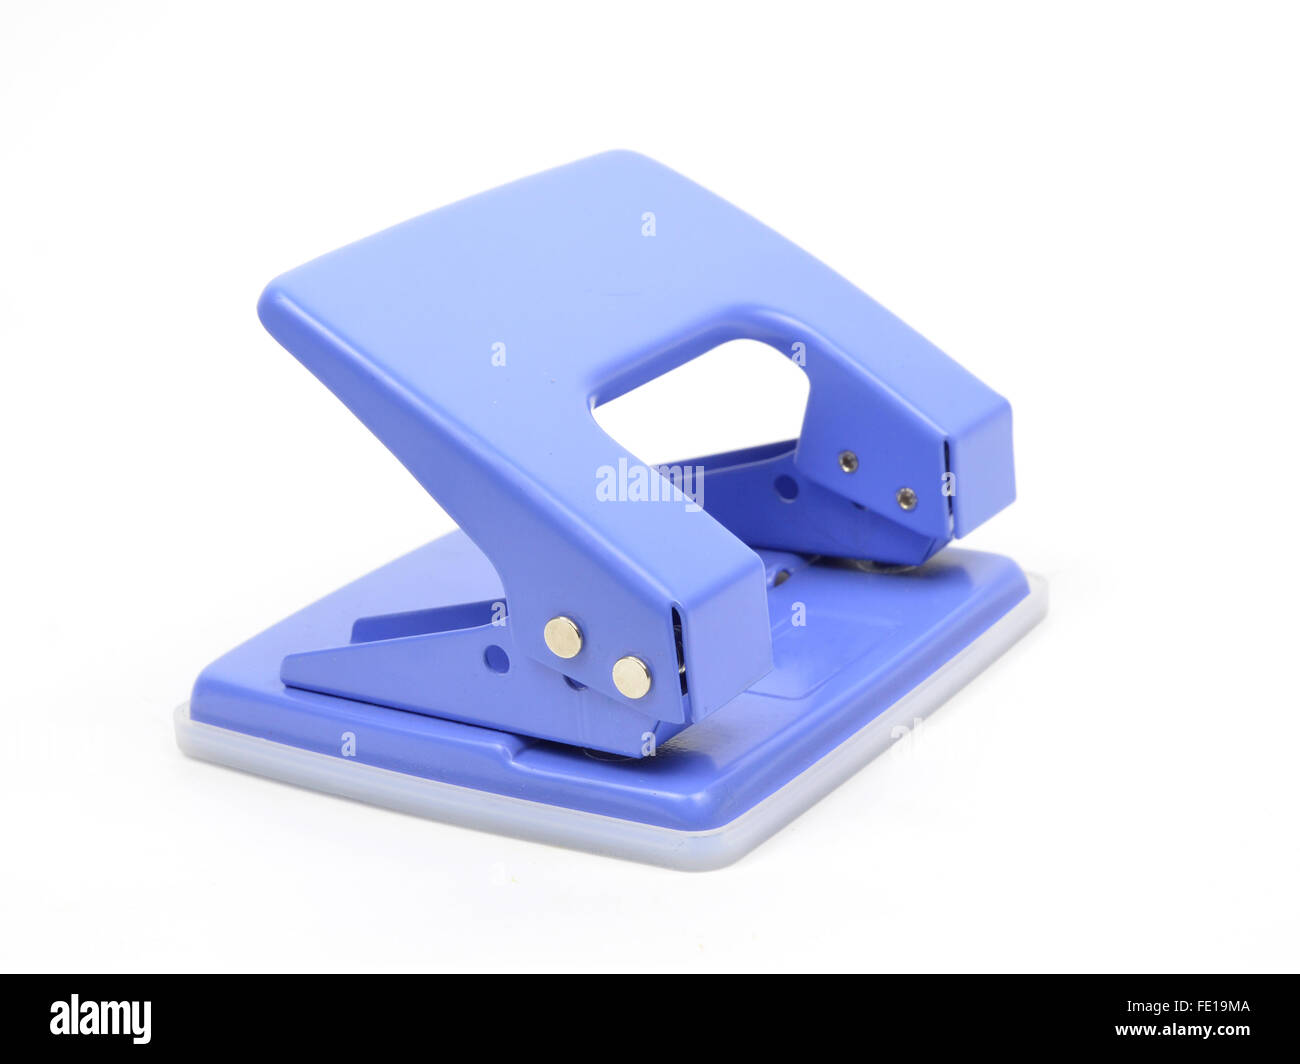 The Puncher isolate on white background - Stock Image